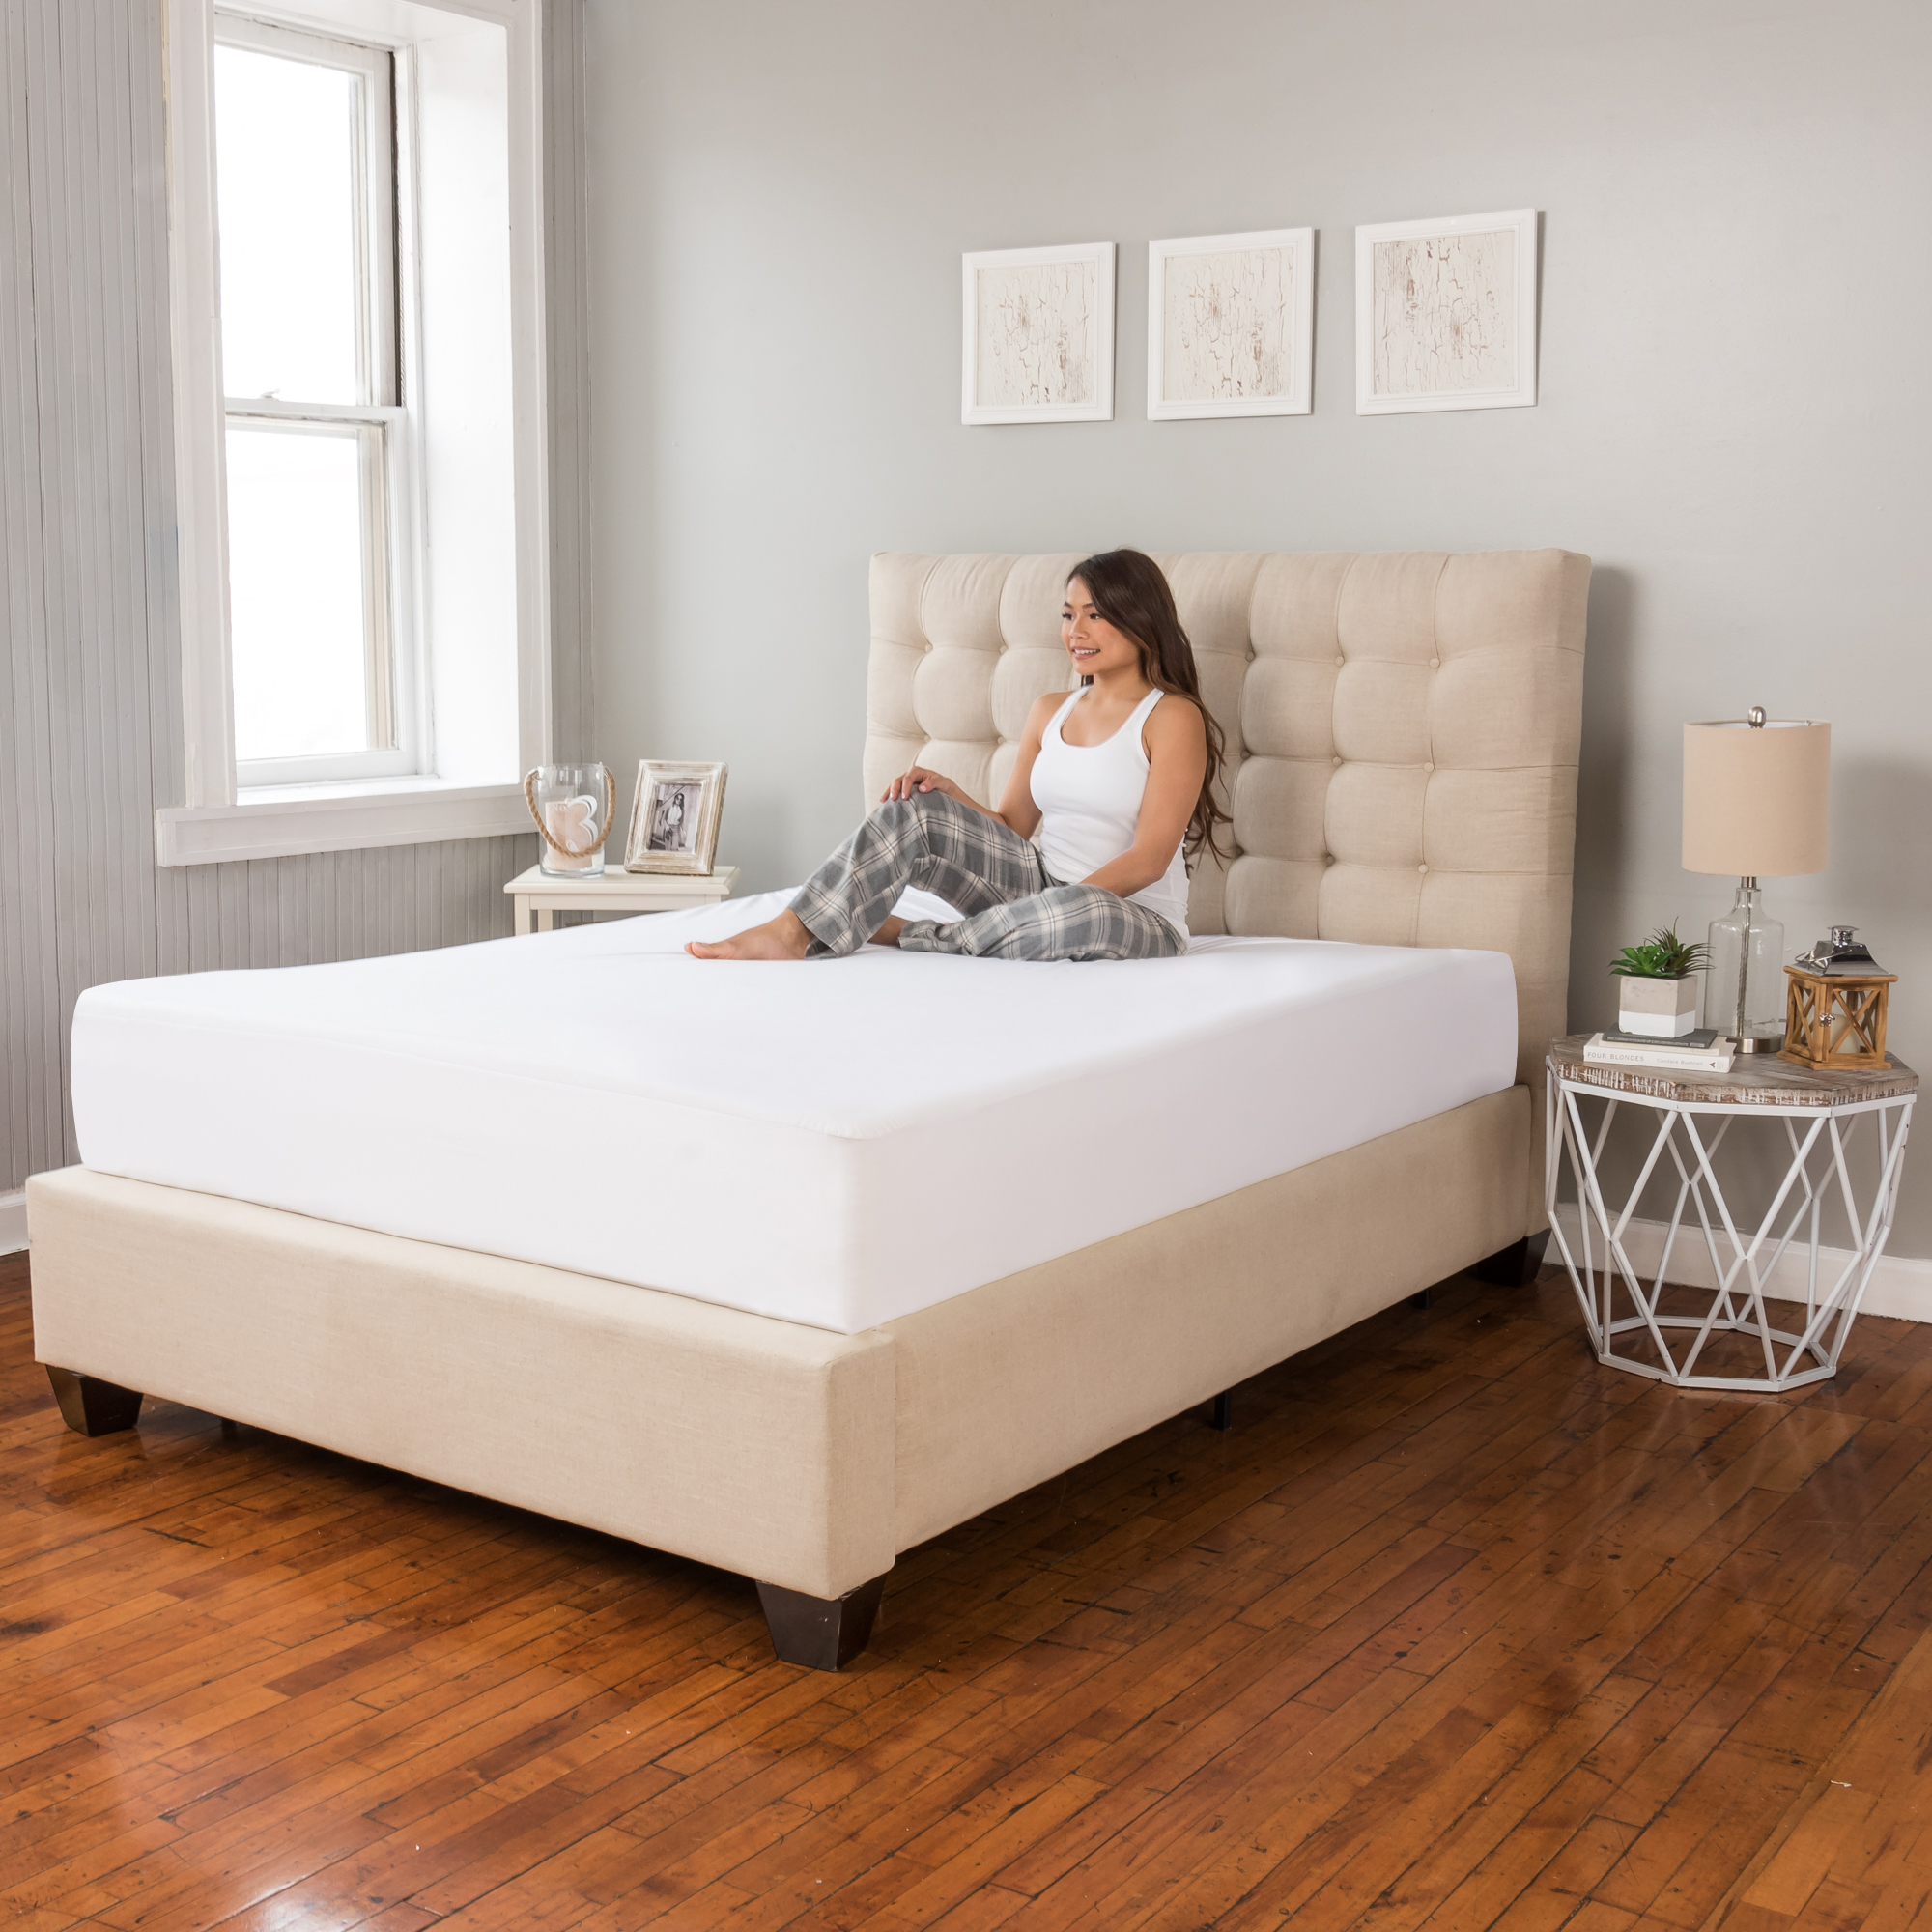 Modern Sleep Defend-A-Bed Premium Waterproof Mattress Pad, Multiple Sizes